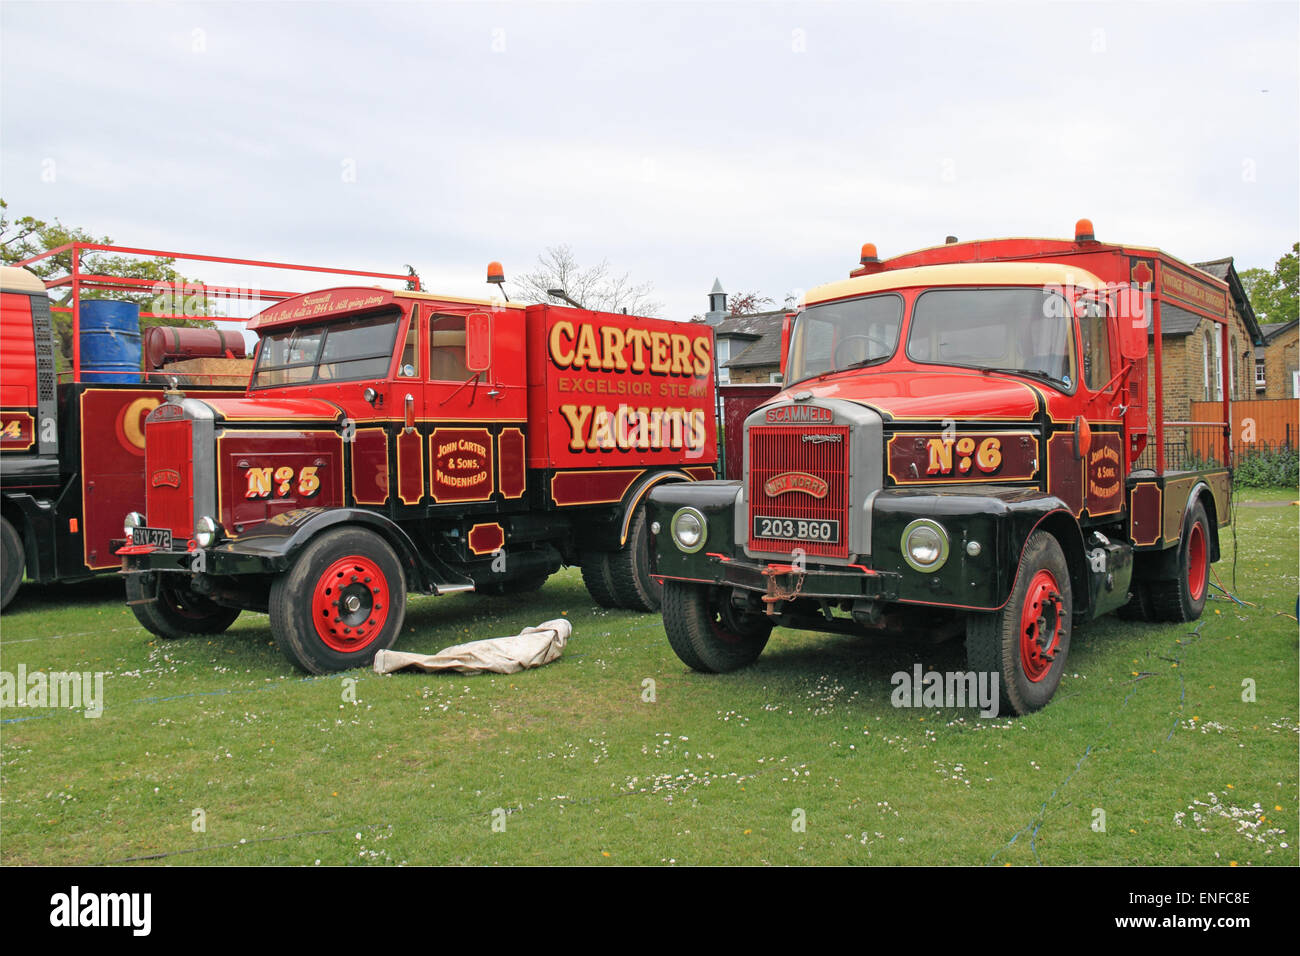 1944 and 1961 Scammell lorries, Carter's Steam Fair. Traditional historic travelling fairground rides and attractions. - Stock Image